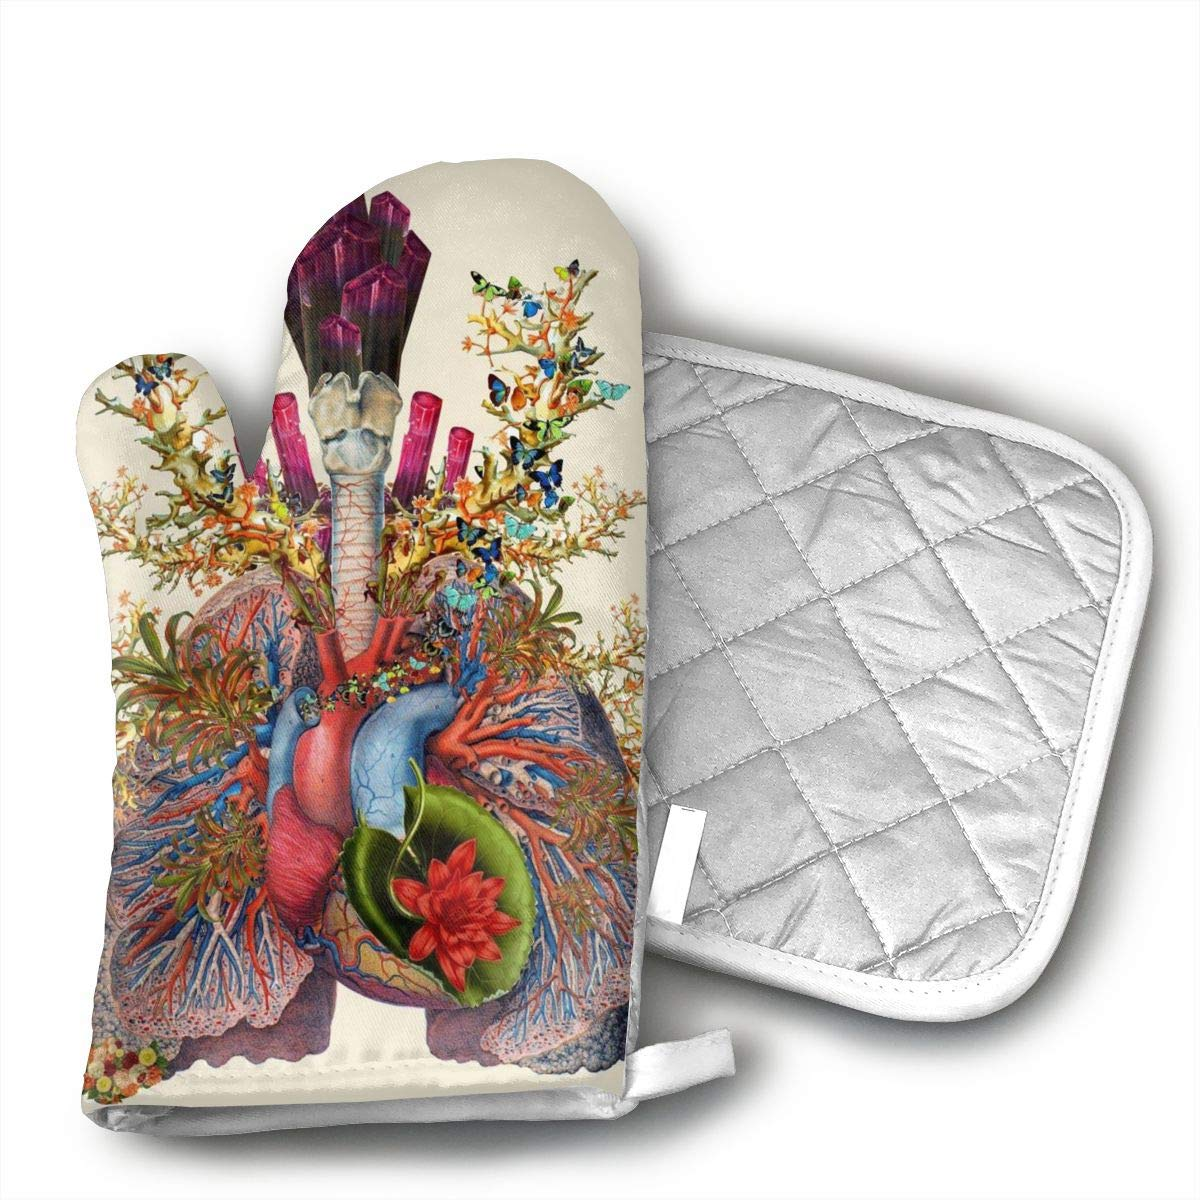 Wiqo9 Anatomical Collages Oven Mitts and Pot Holders Kitchen Mitten Cooking Gloves,Cooking, Baking, BBQ.